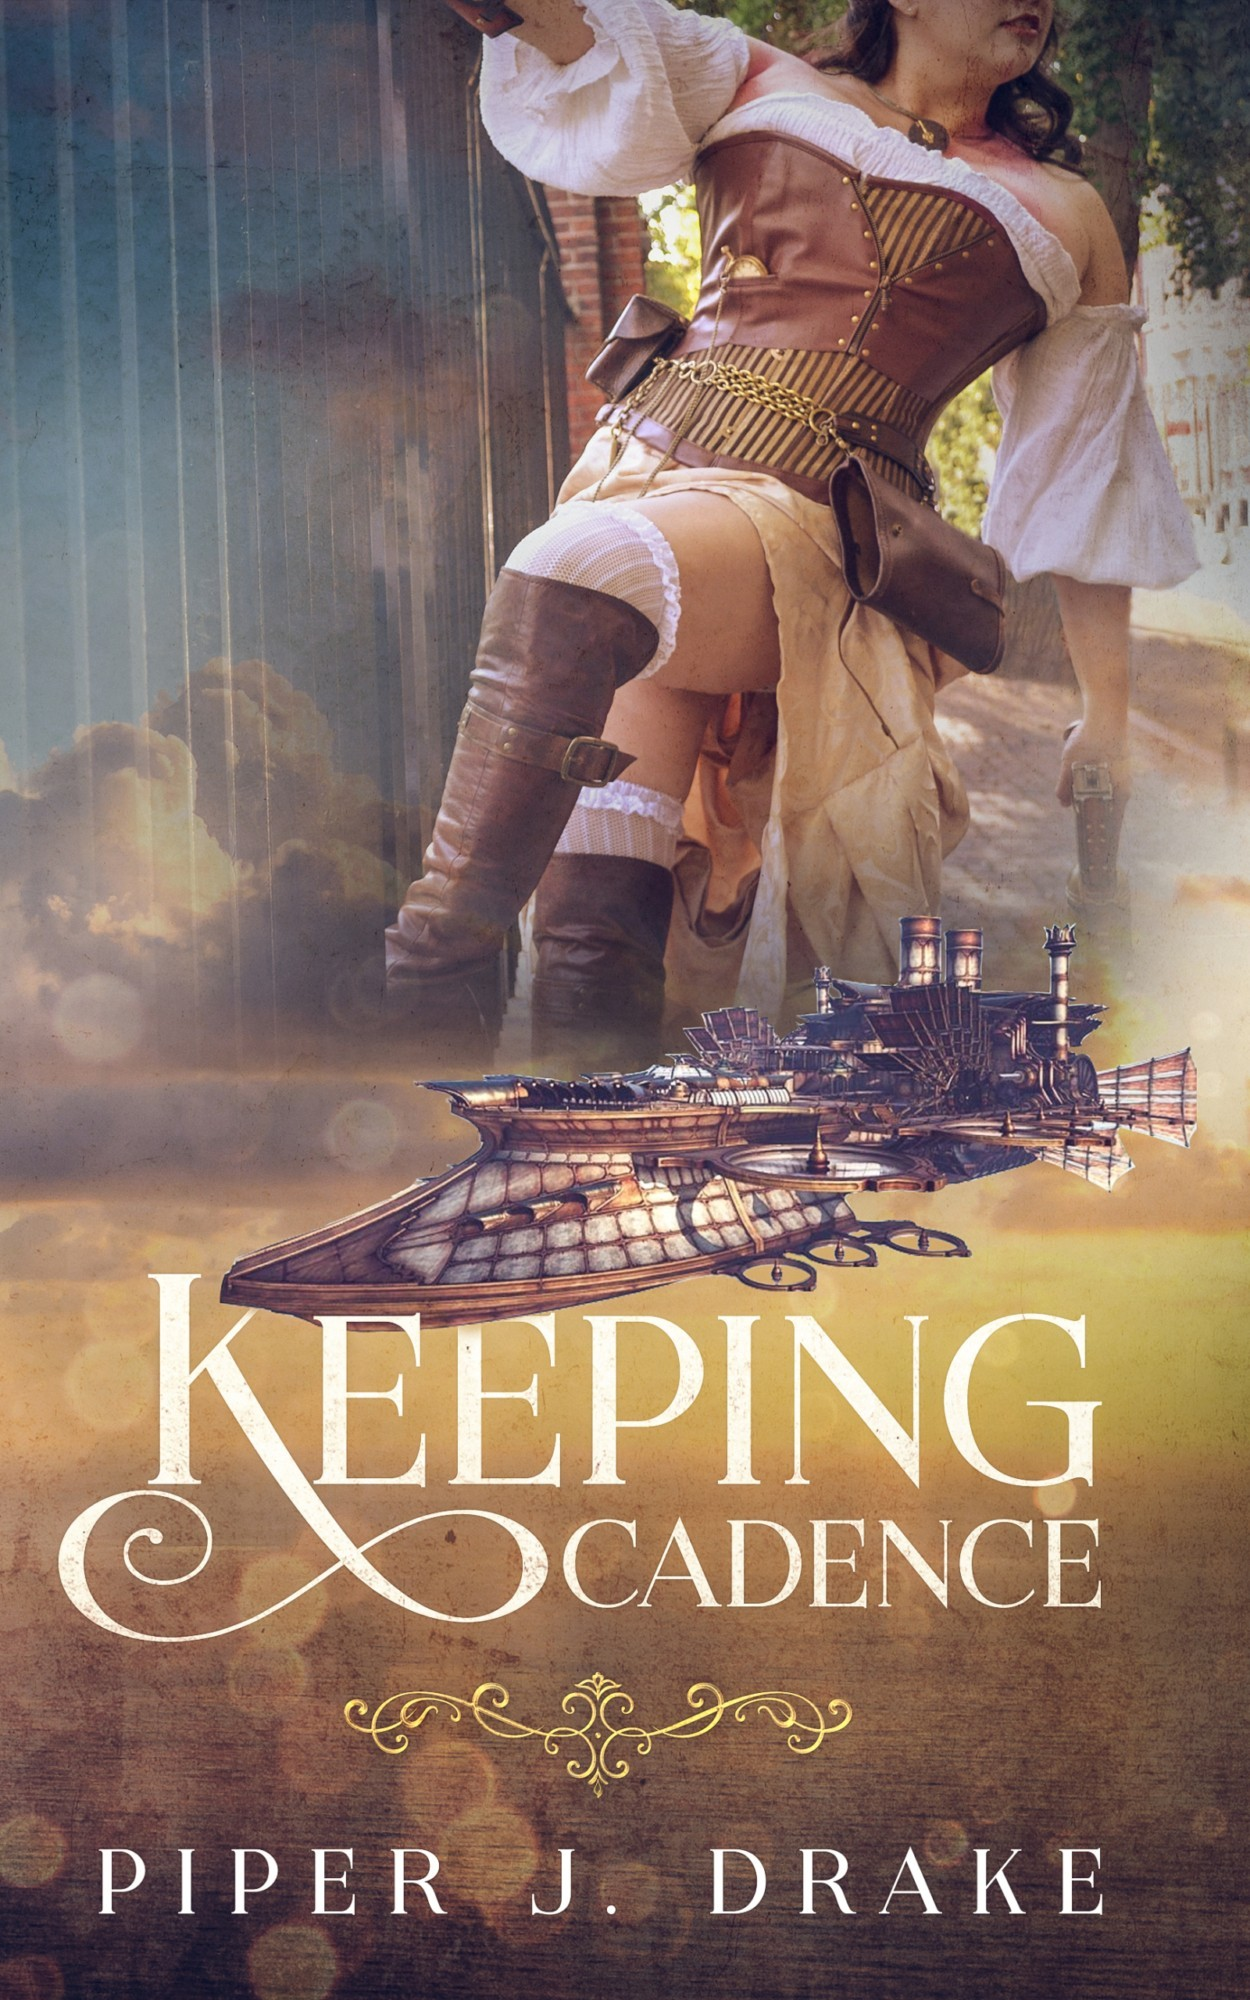 keeping cadence by piper j drake